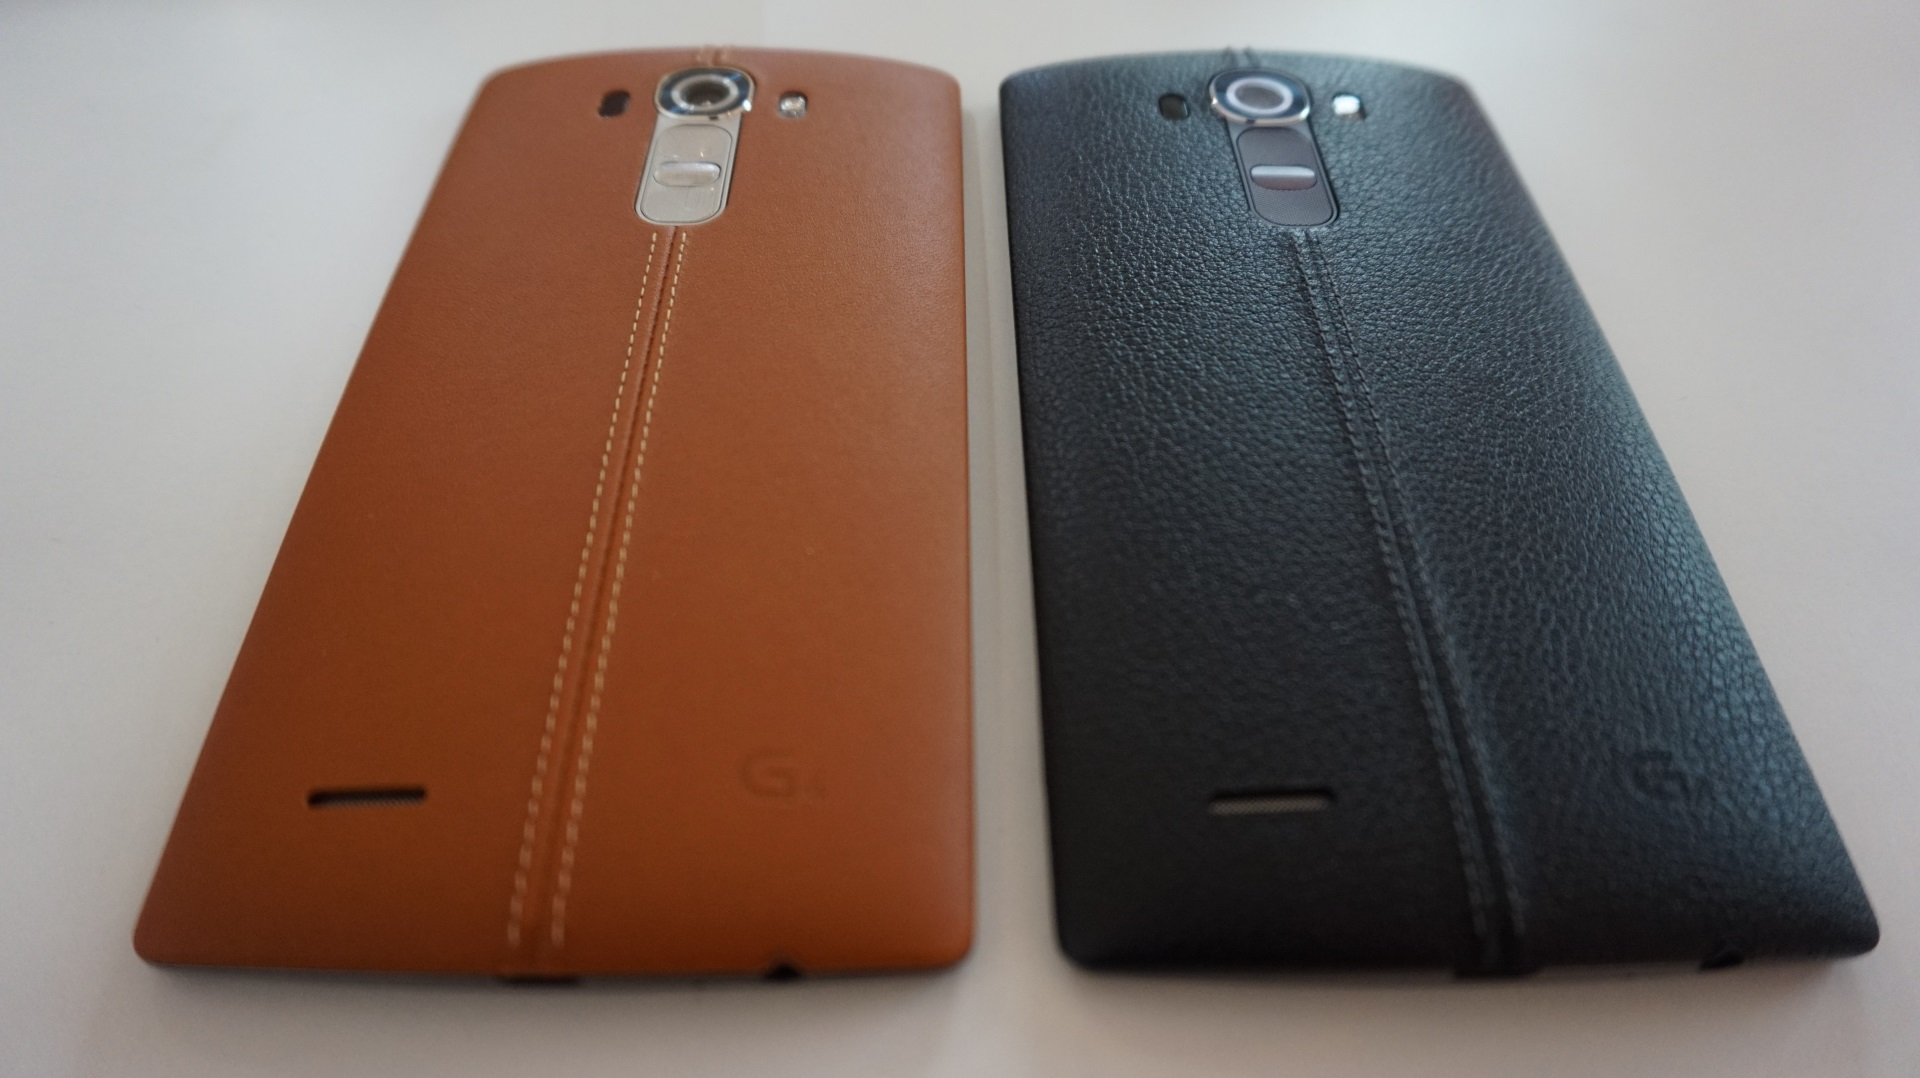 LG G4 Review Still A Great Choice